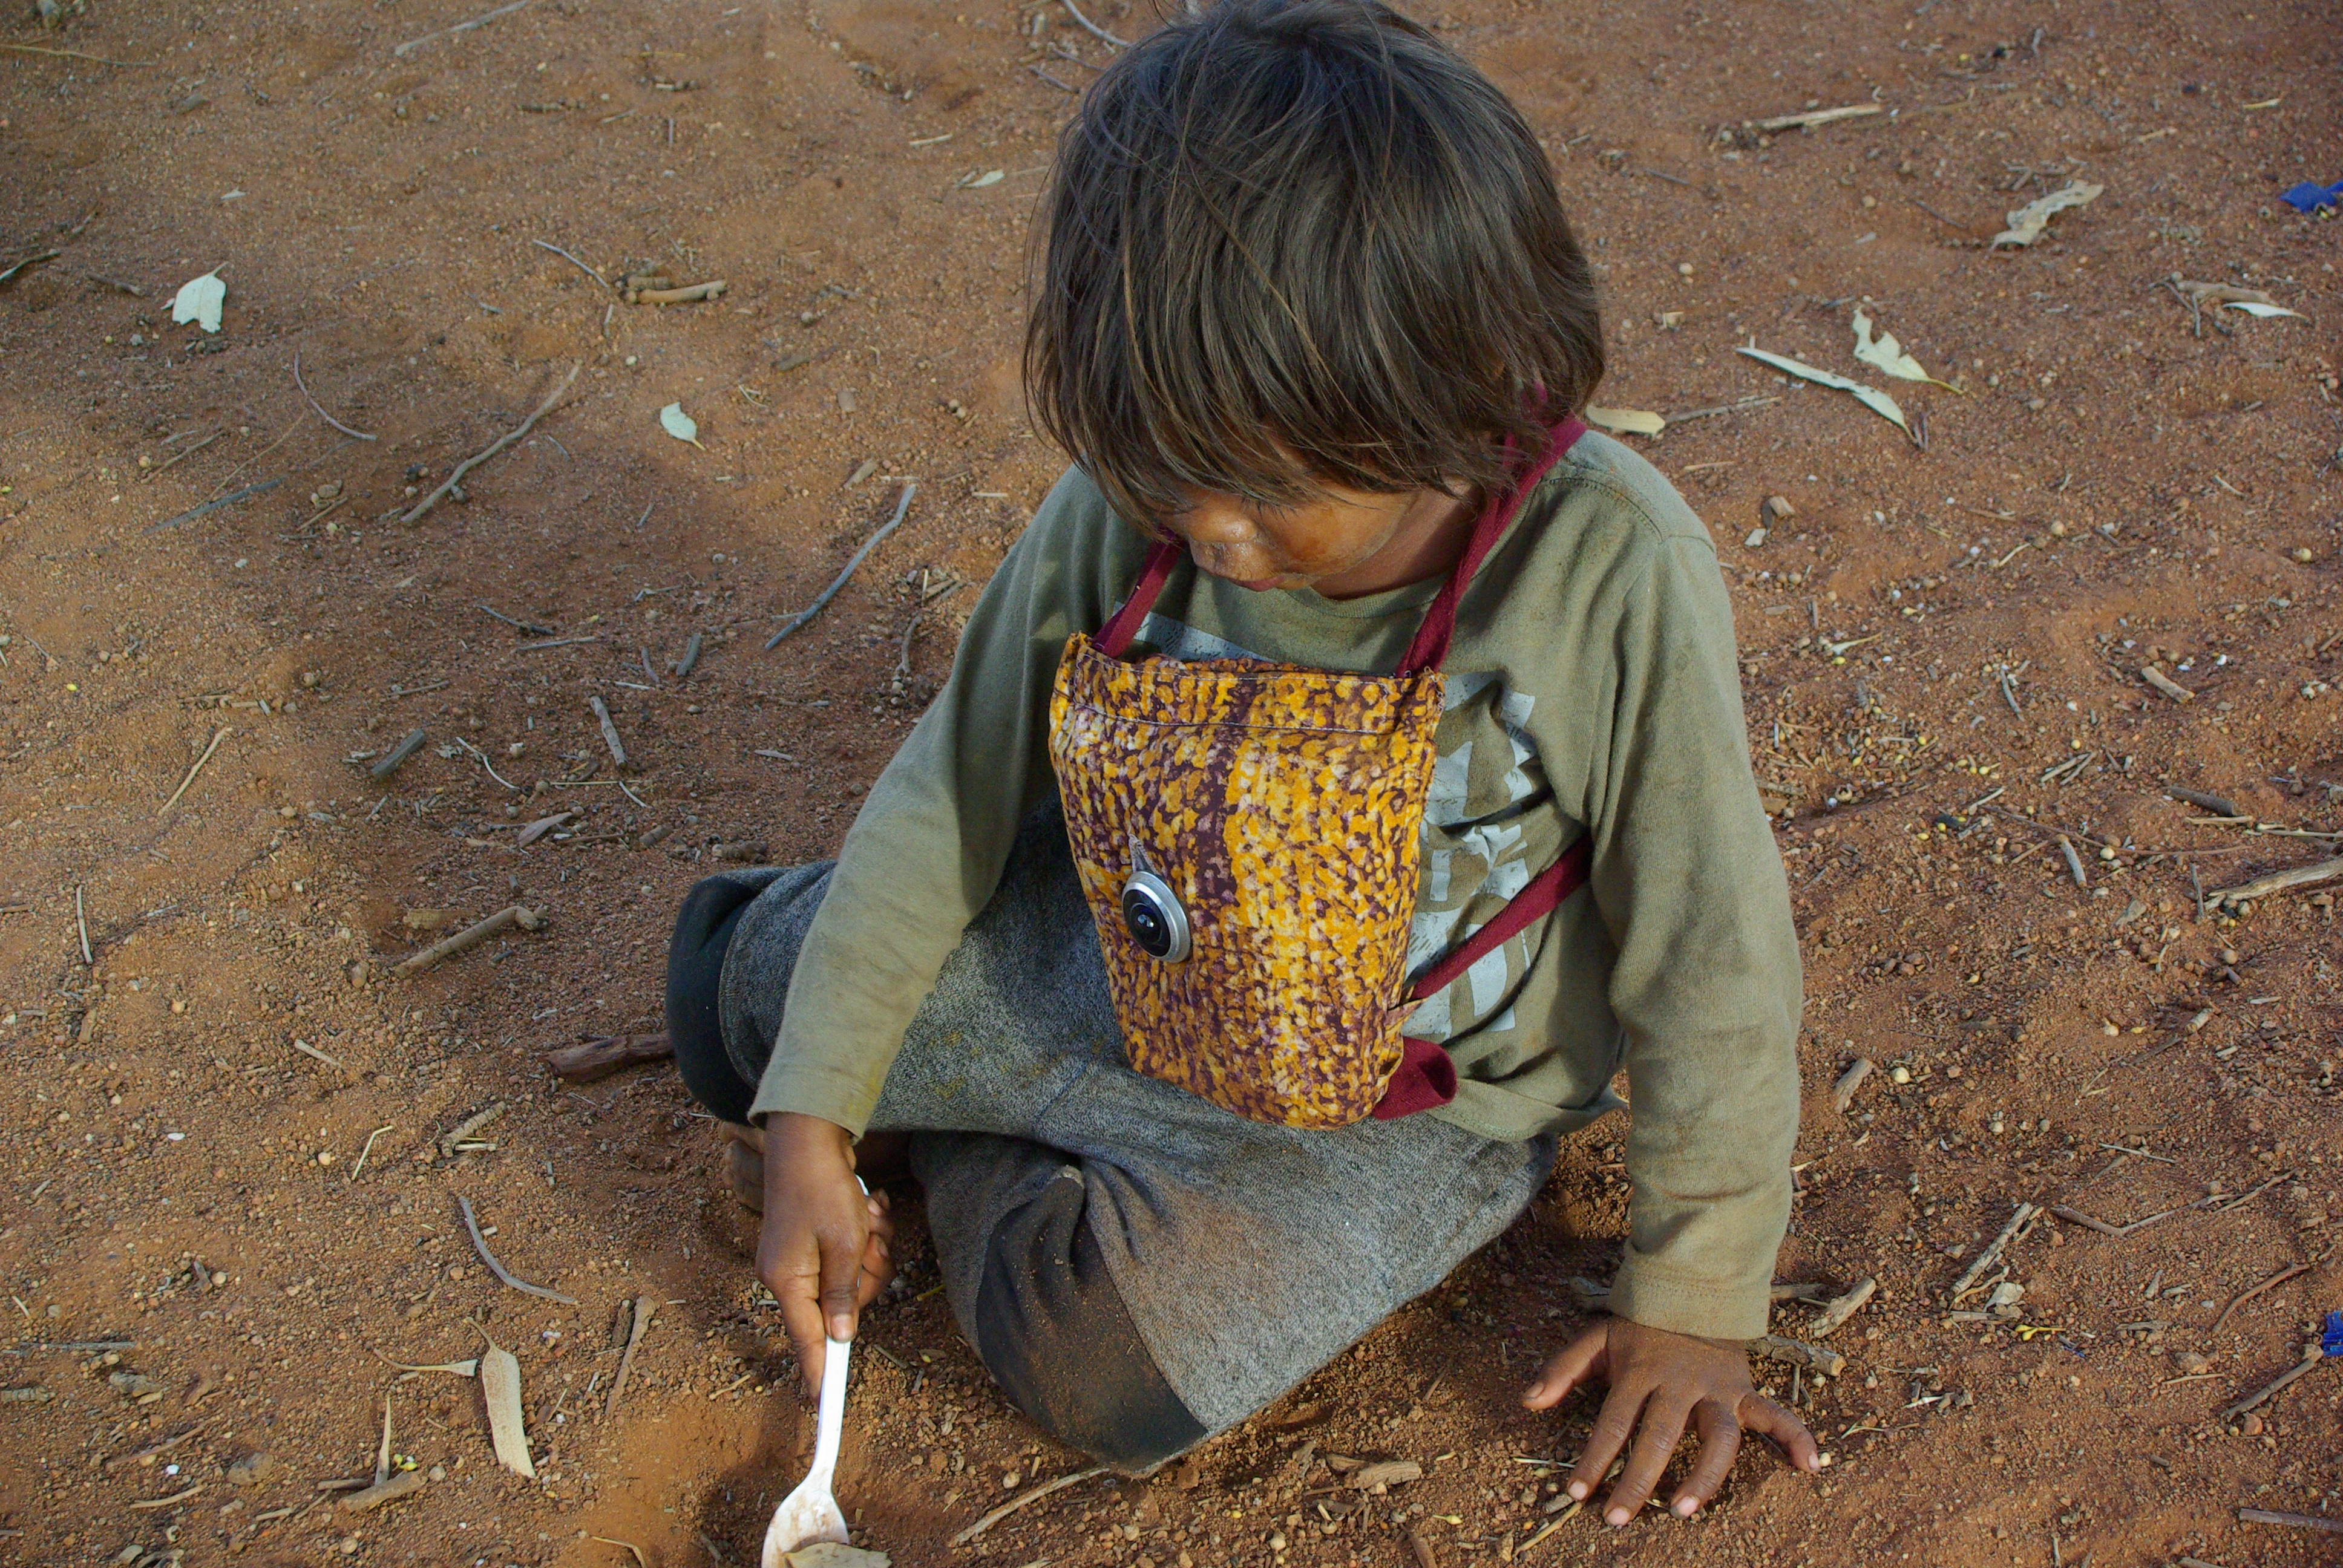 A child playing while wearing a recording device during fieldwork